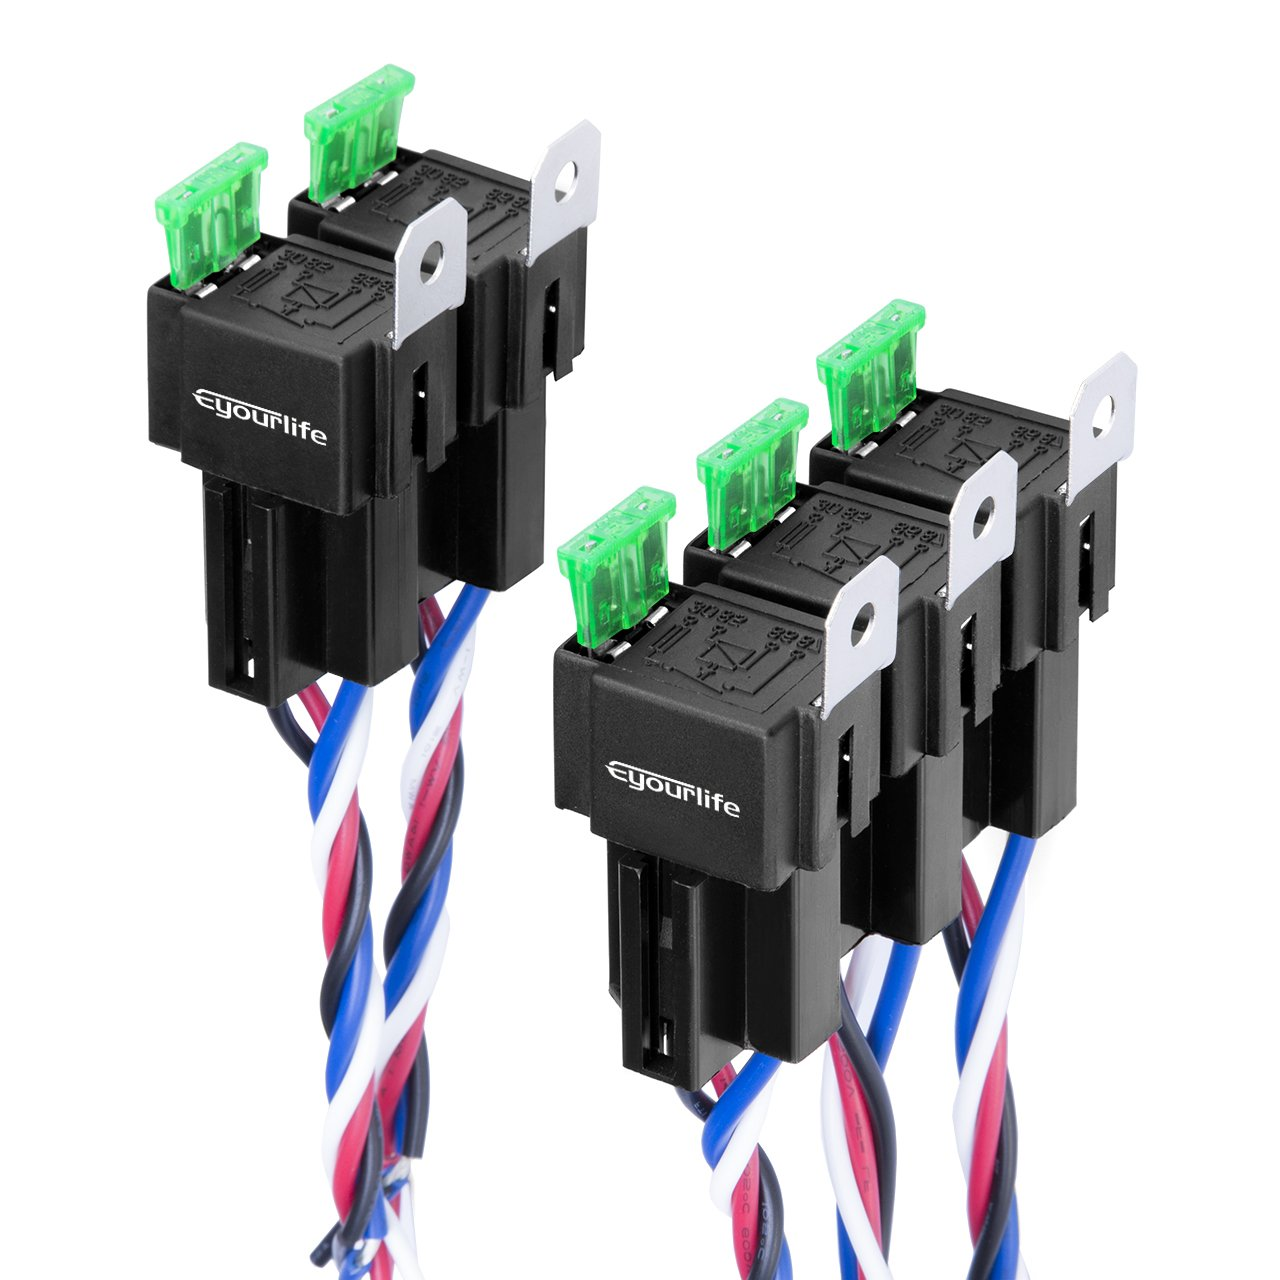 Eyourlife 5 Pack 30 40 Amp Auto Relay Harness With Pin Wiring Diagram Further 12 Volt Diagrams As Well Sockets Wires Spst 12v 40a 4 Mounting Fuse 14awg 18awg Heavy Duty Automotive